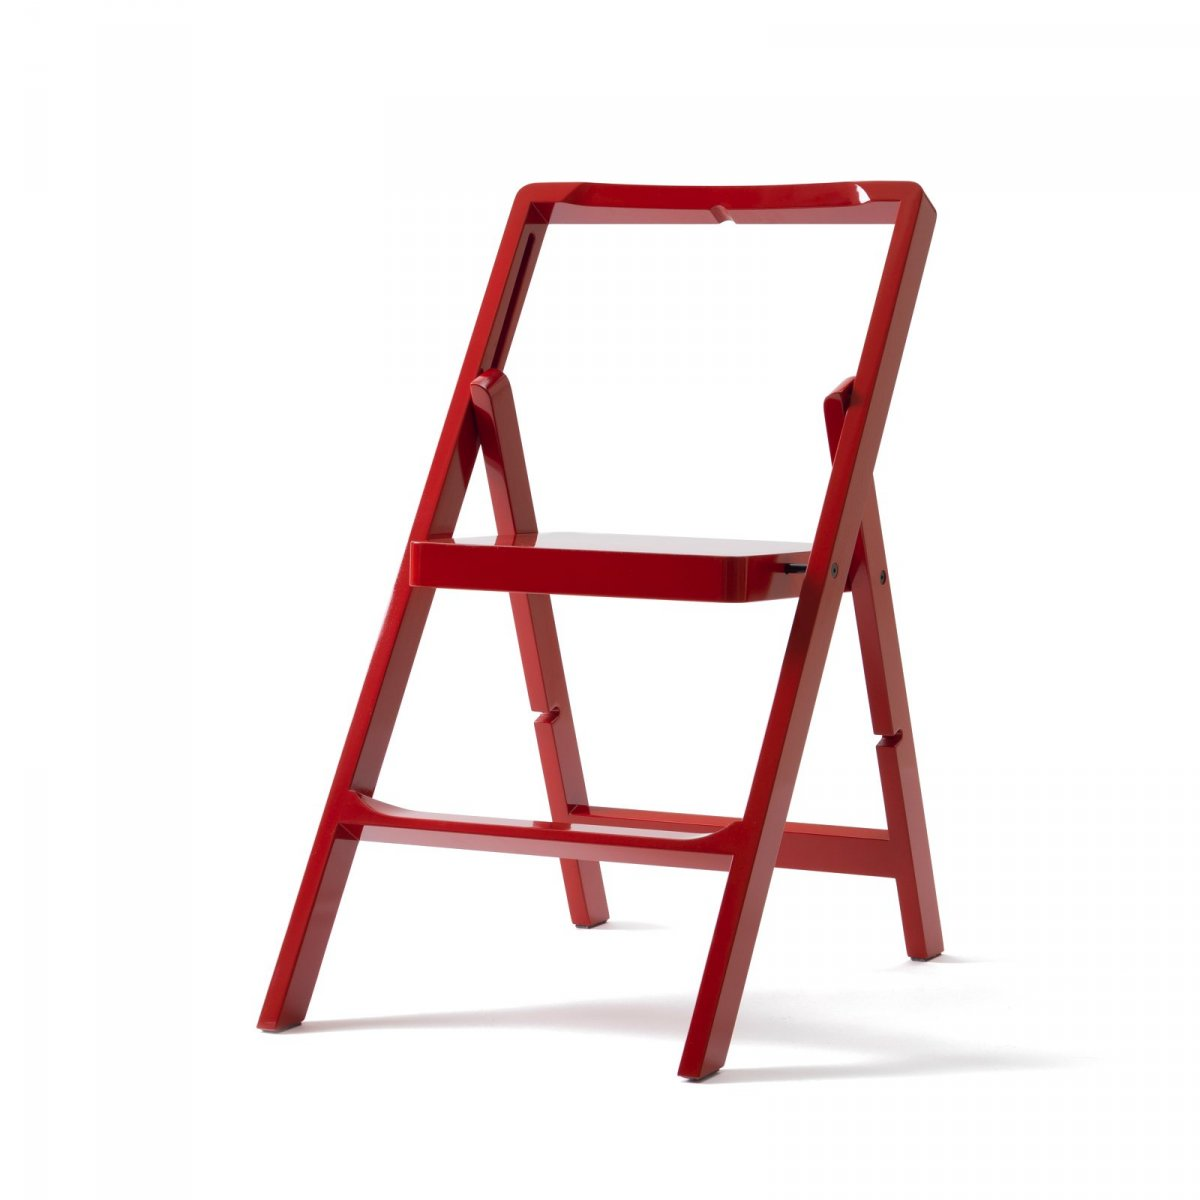 Step Mini step stool, red.